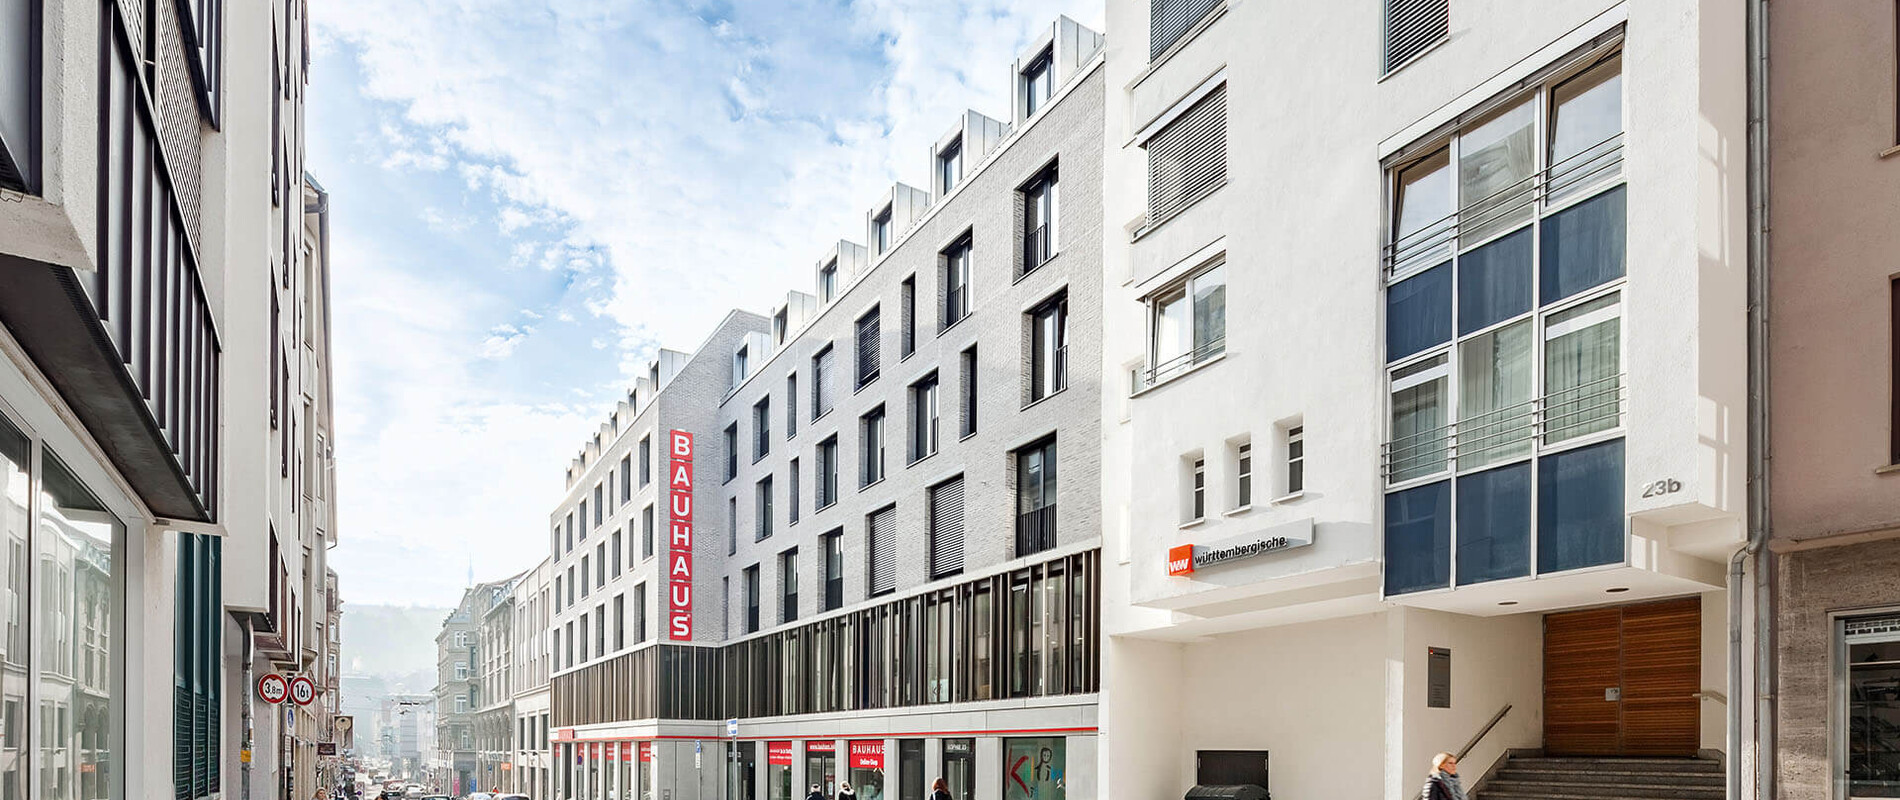 mixed-used living and business building - new construction - Sophie 23 Stuttgart - street view